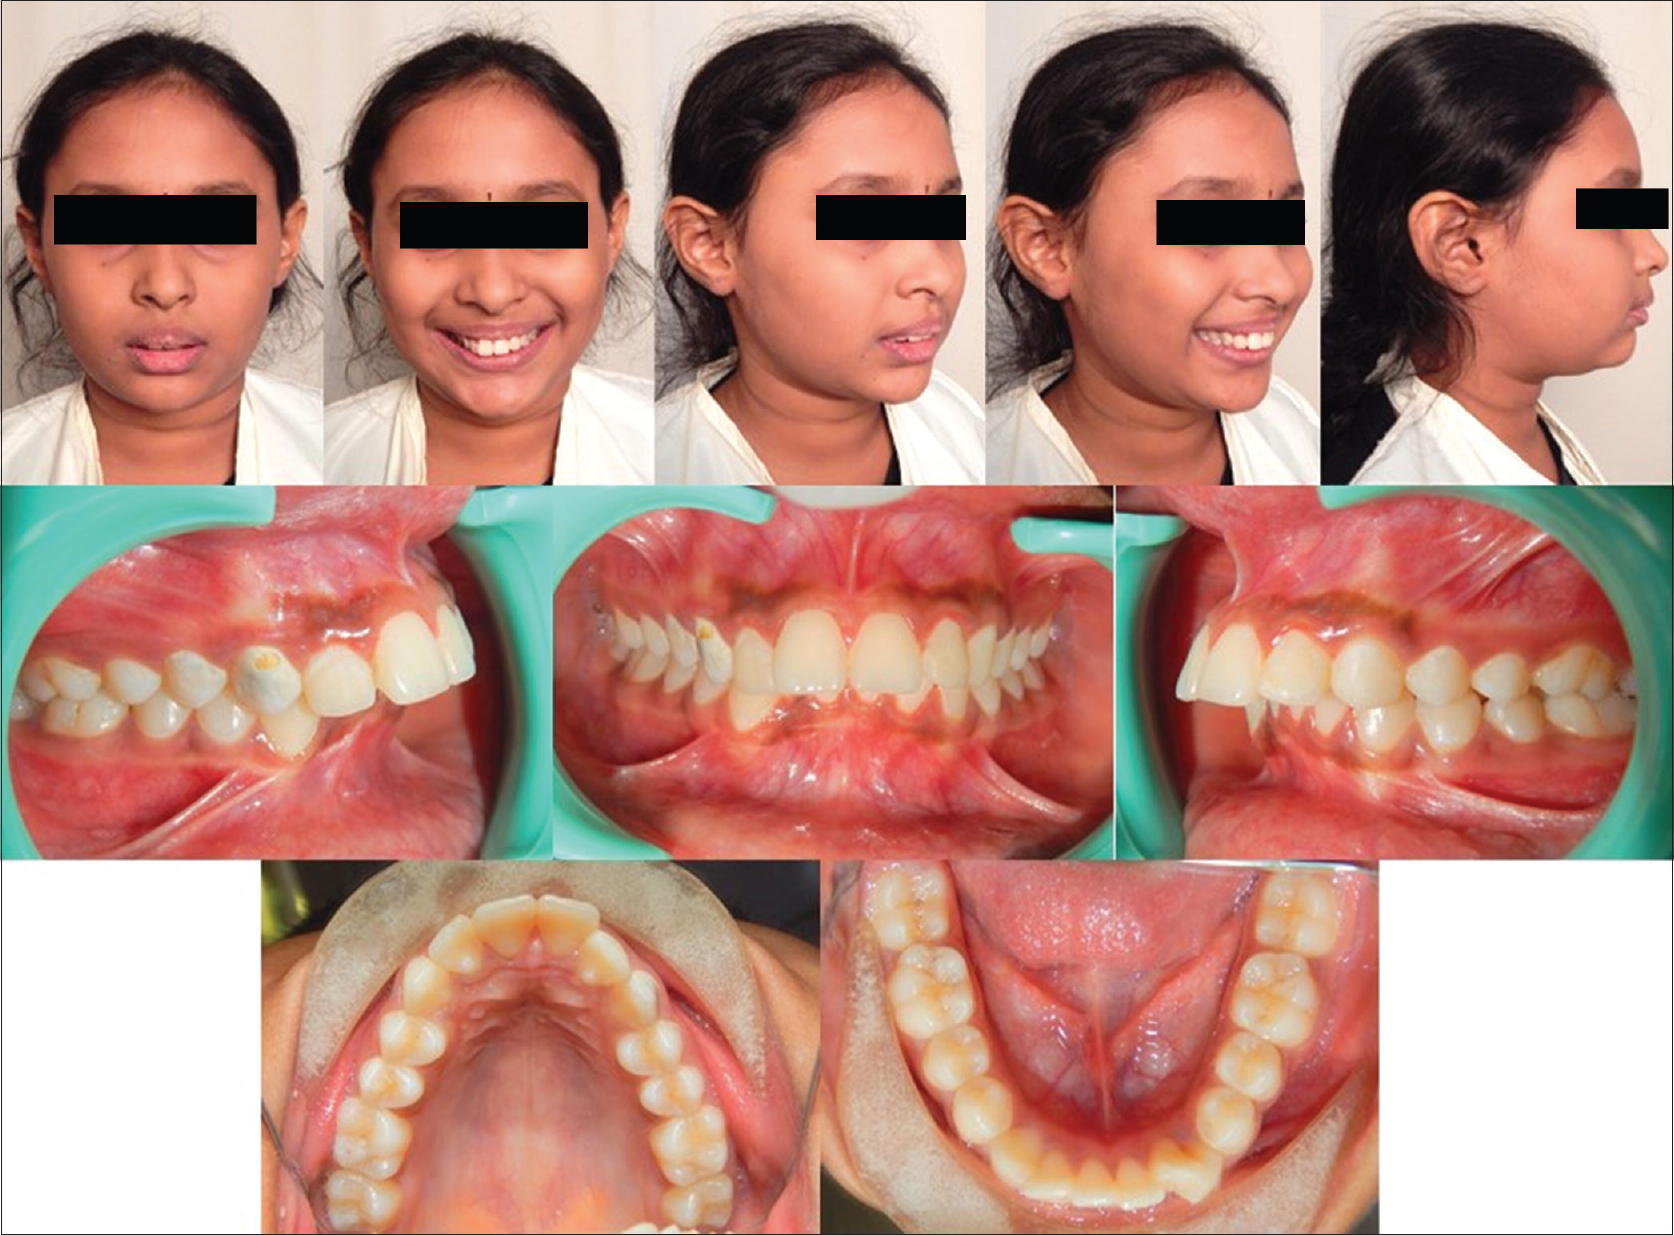 Figure 3: Pretreatment.extra oral and intra oral photographs